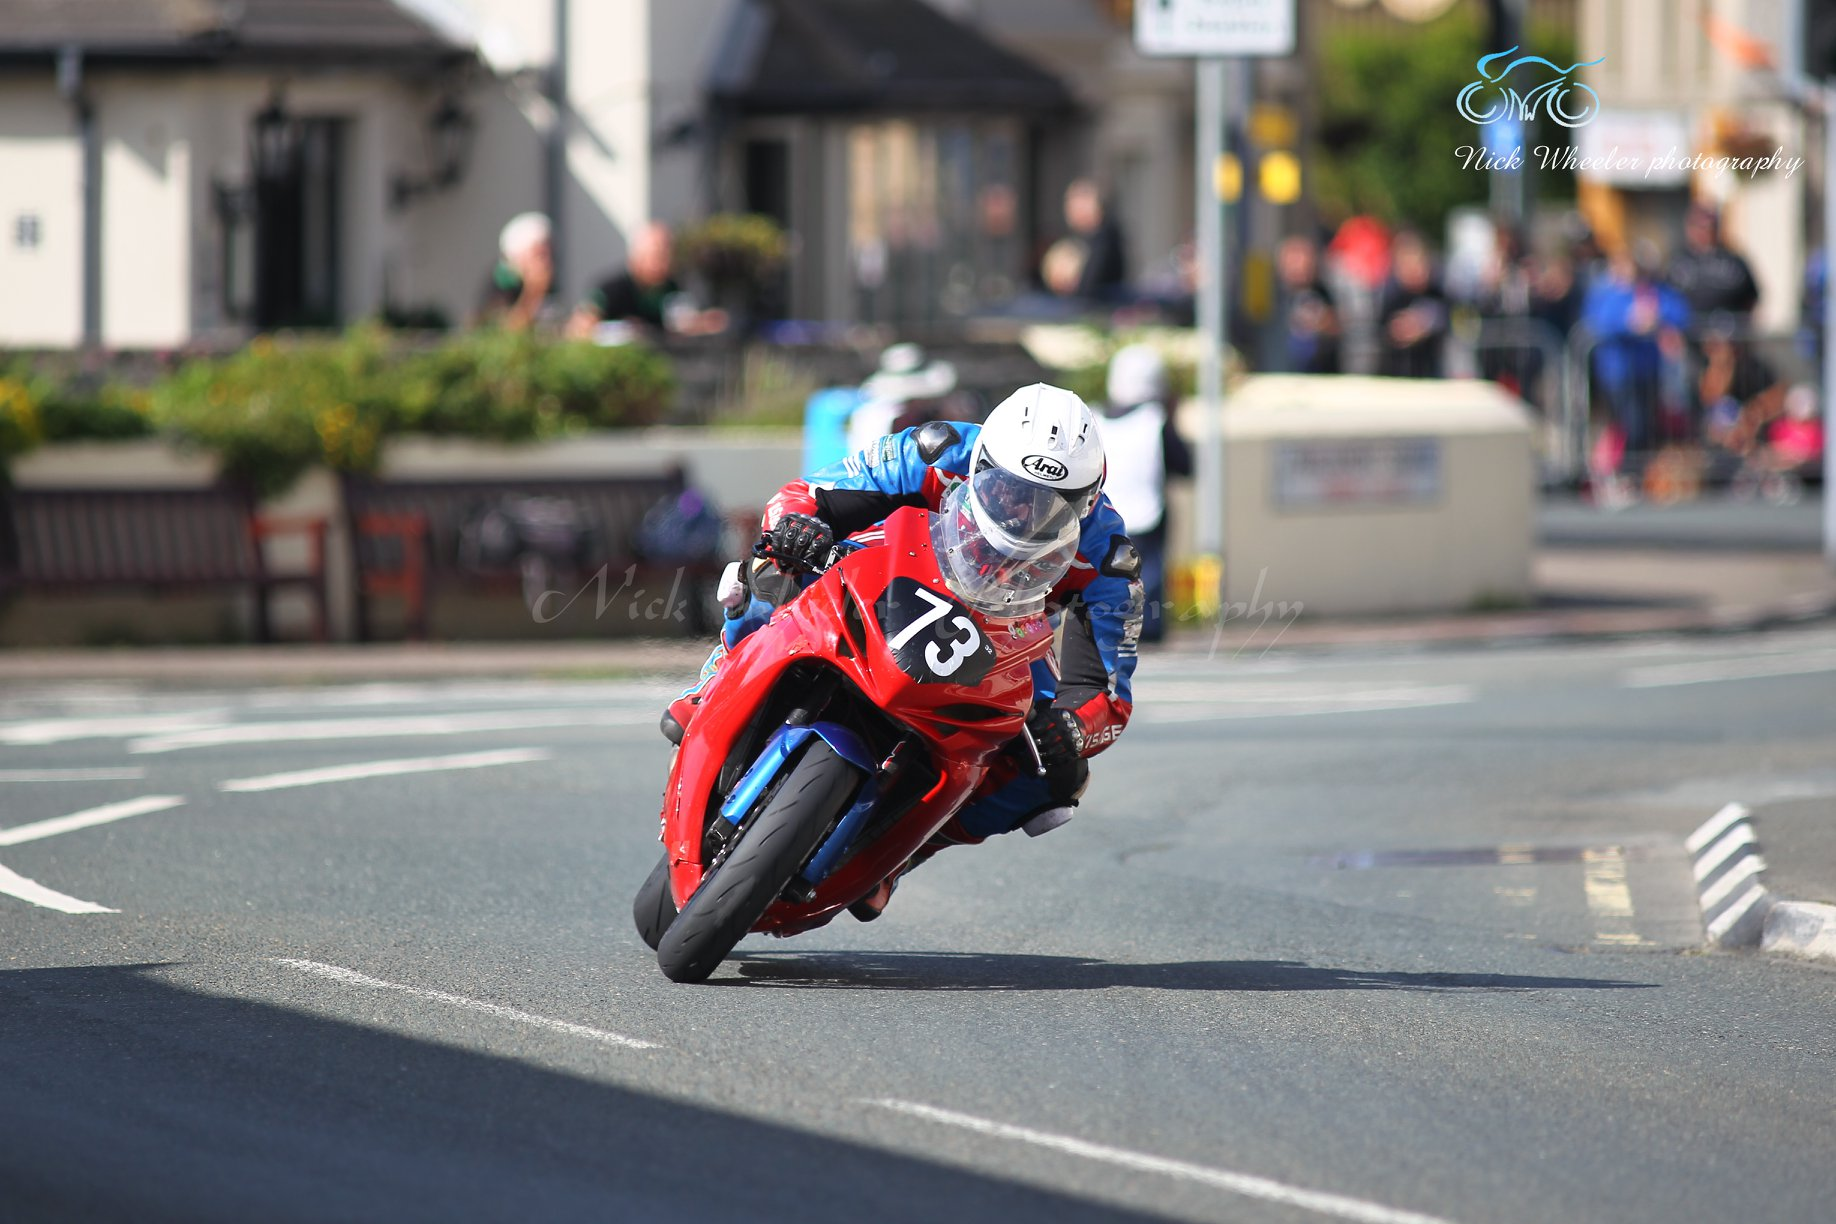 Red Line Road Racing's Murphy Switches To MV Agusta Machinery For 2020 Manx GP Quest